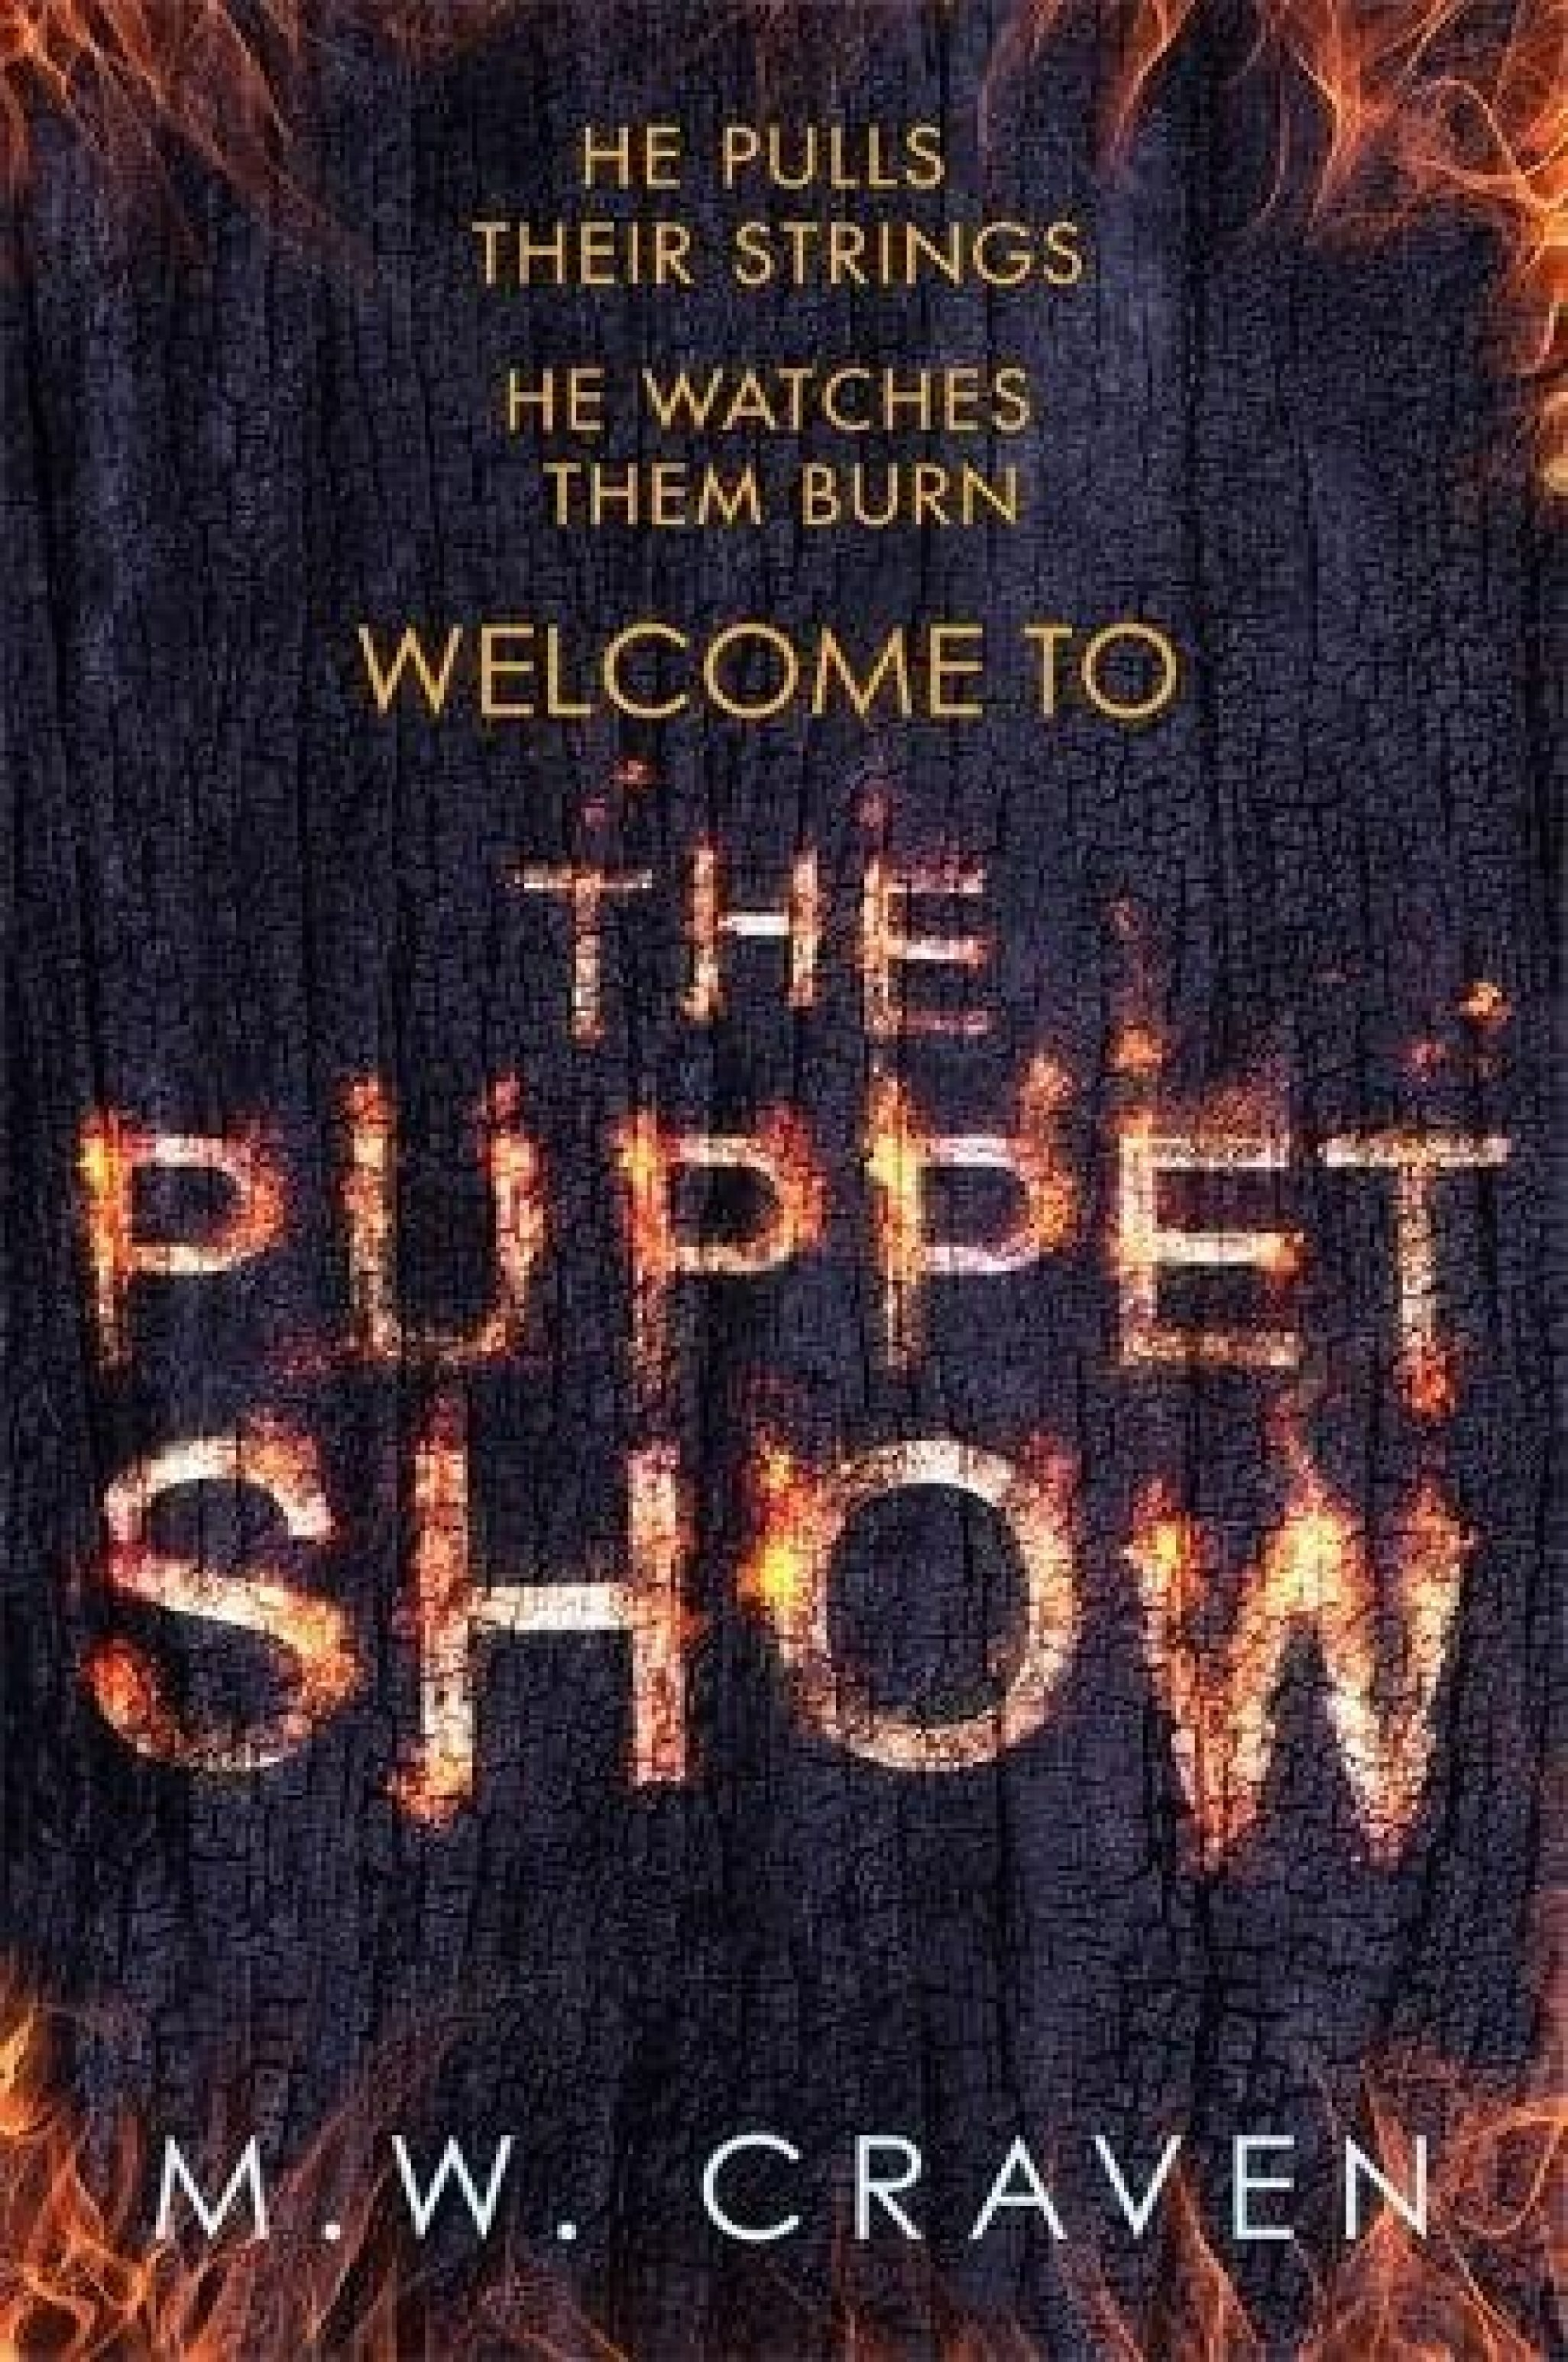 Introduction to our June Book of the Month, The Puppet Show by M.W. Craven